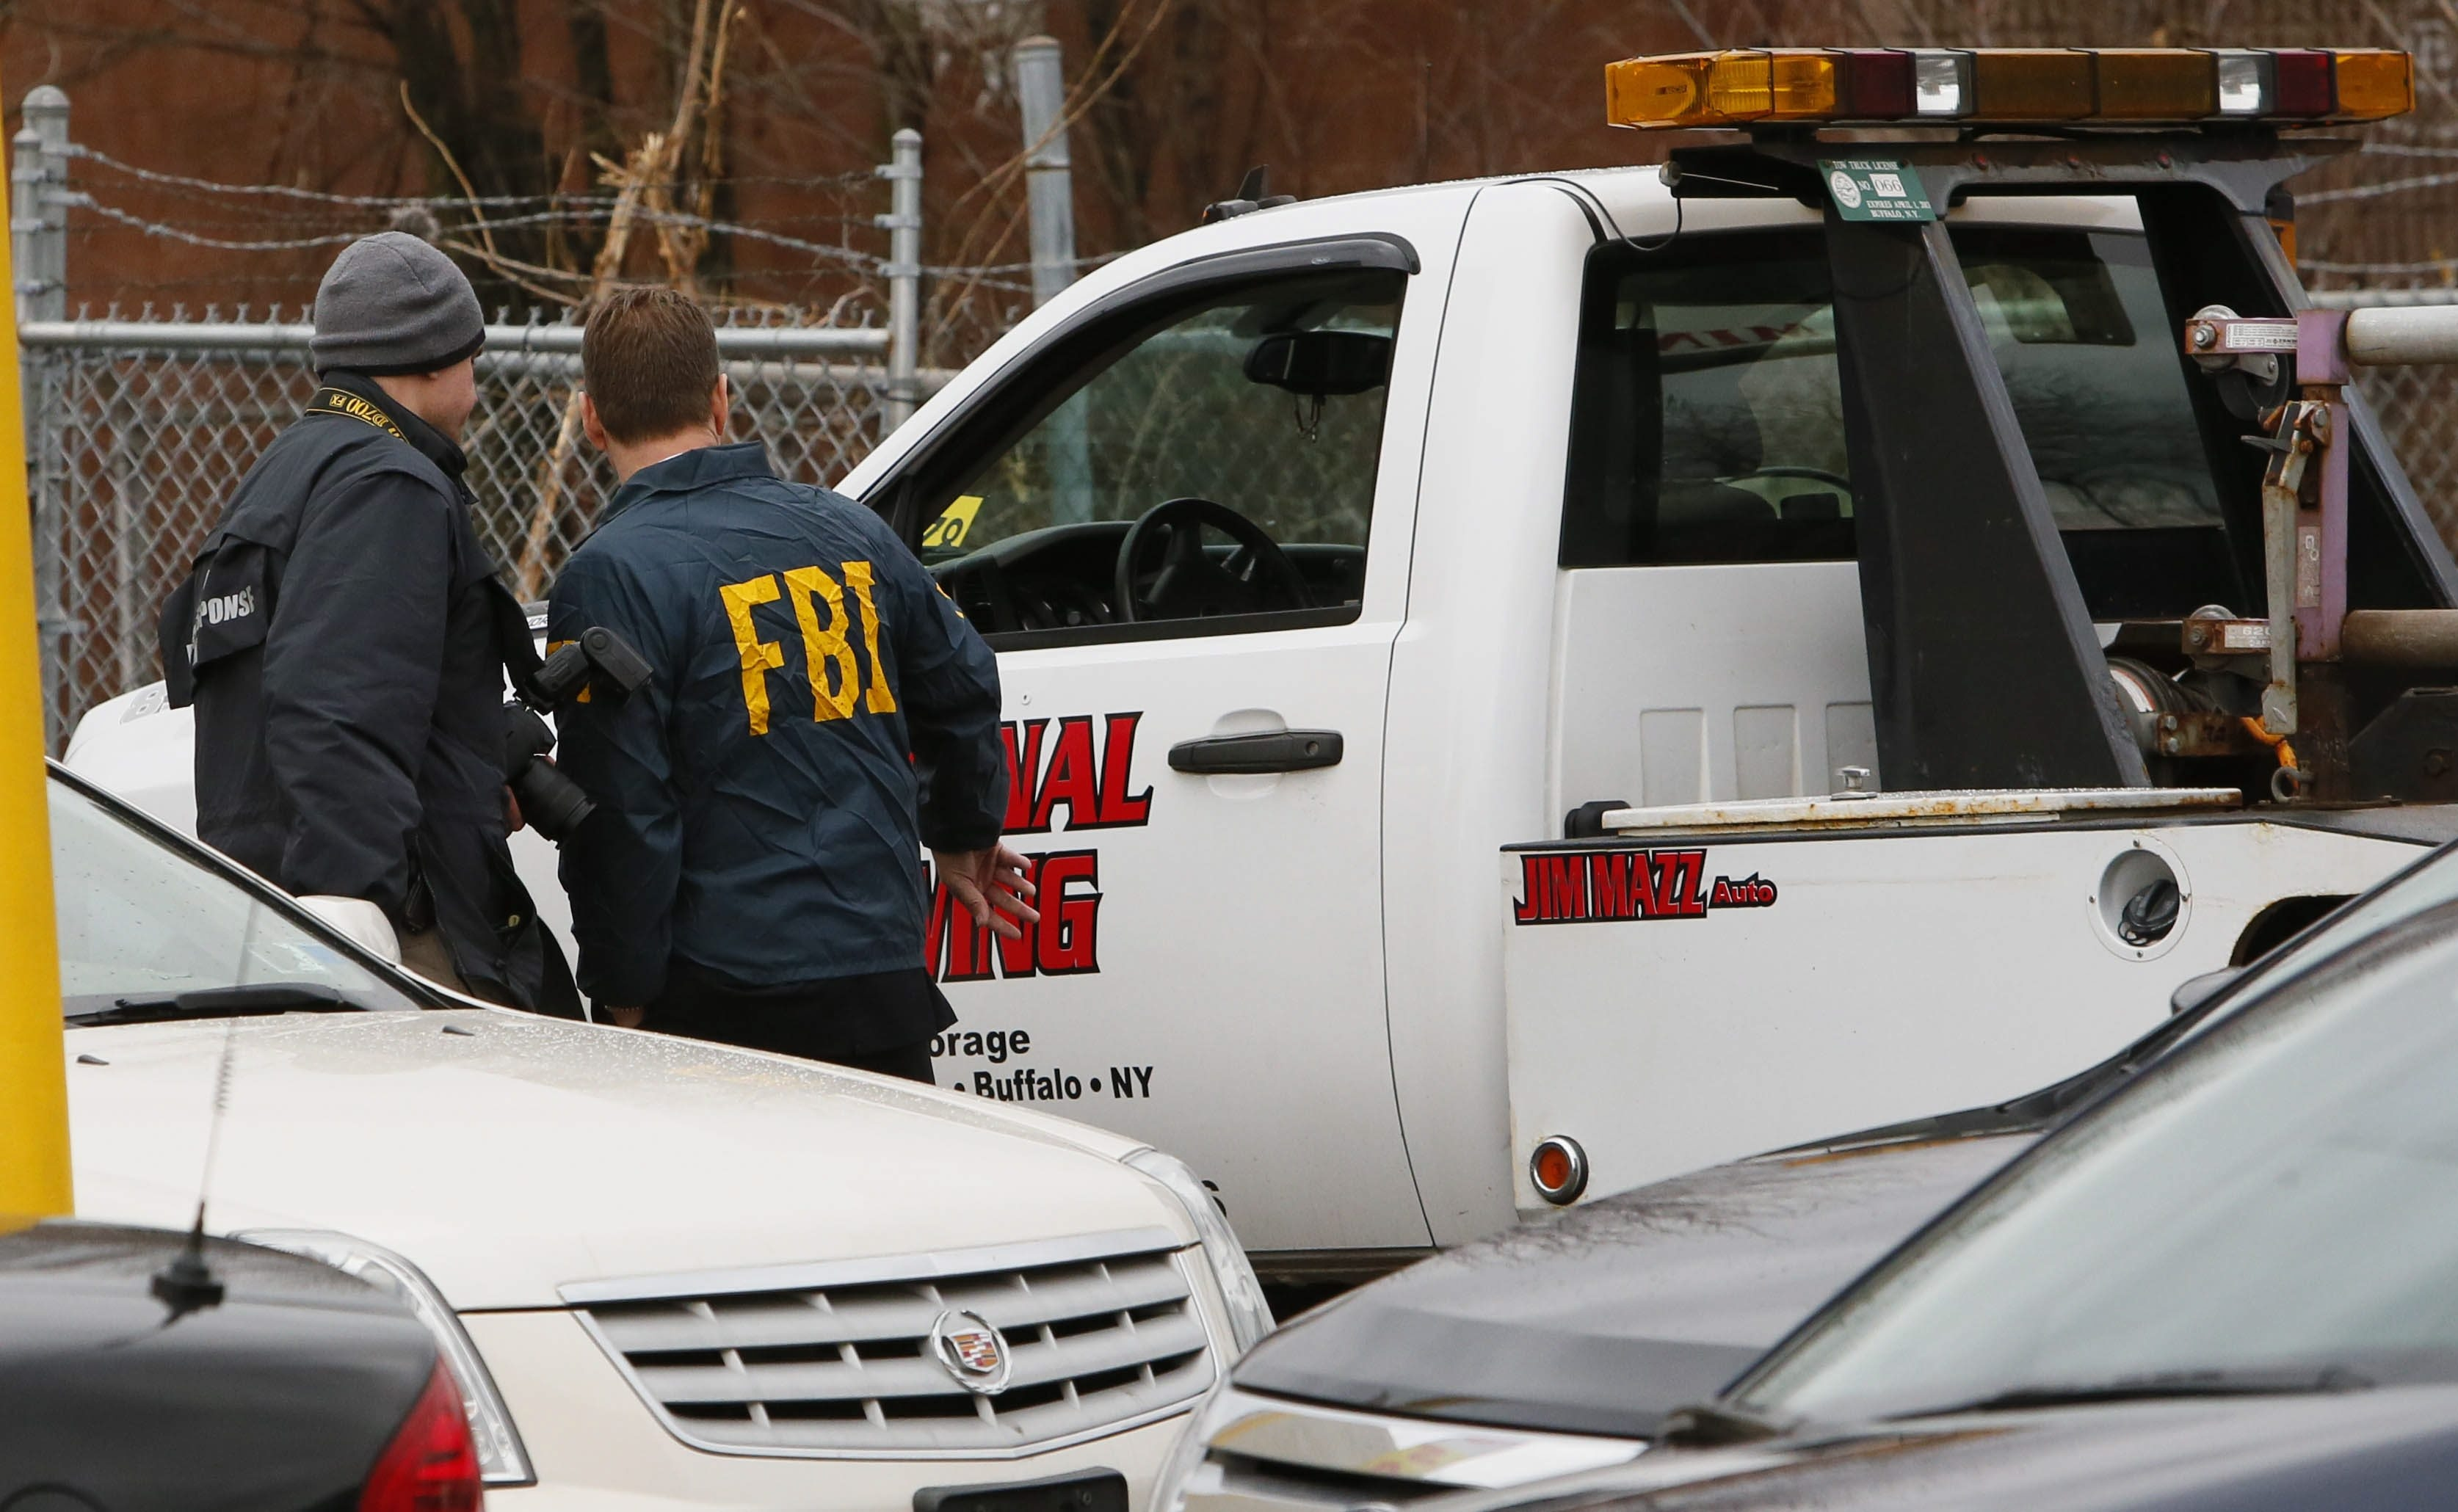 FBI Evidence Response Team members collect evidence while executing a search warrant at Jim Mazz Auto on Bailey Avenue in the city's Lovejoy neighborhood, Wednesday, Dec. 5, 2012. (Derek Gee/Buffalo News file photo)